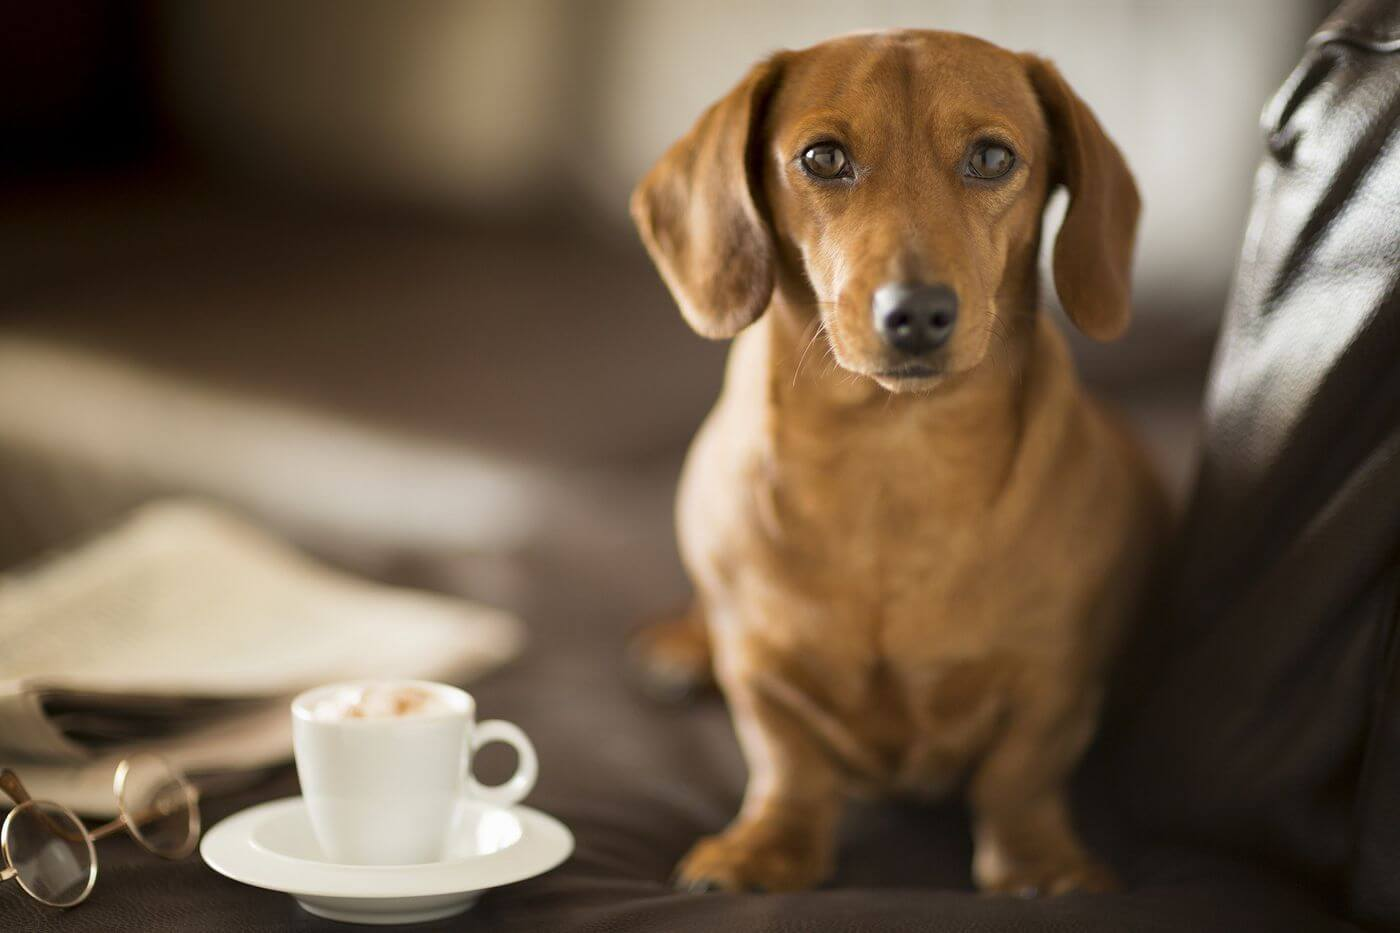 Coffee dog likes coffee